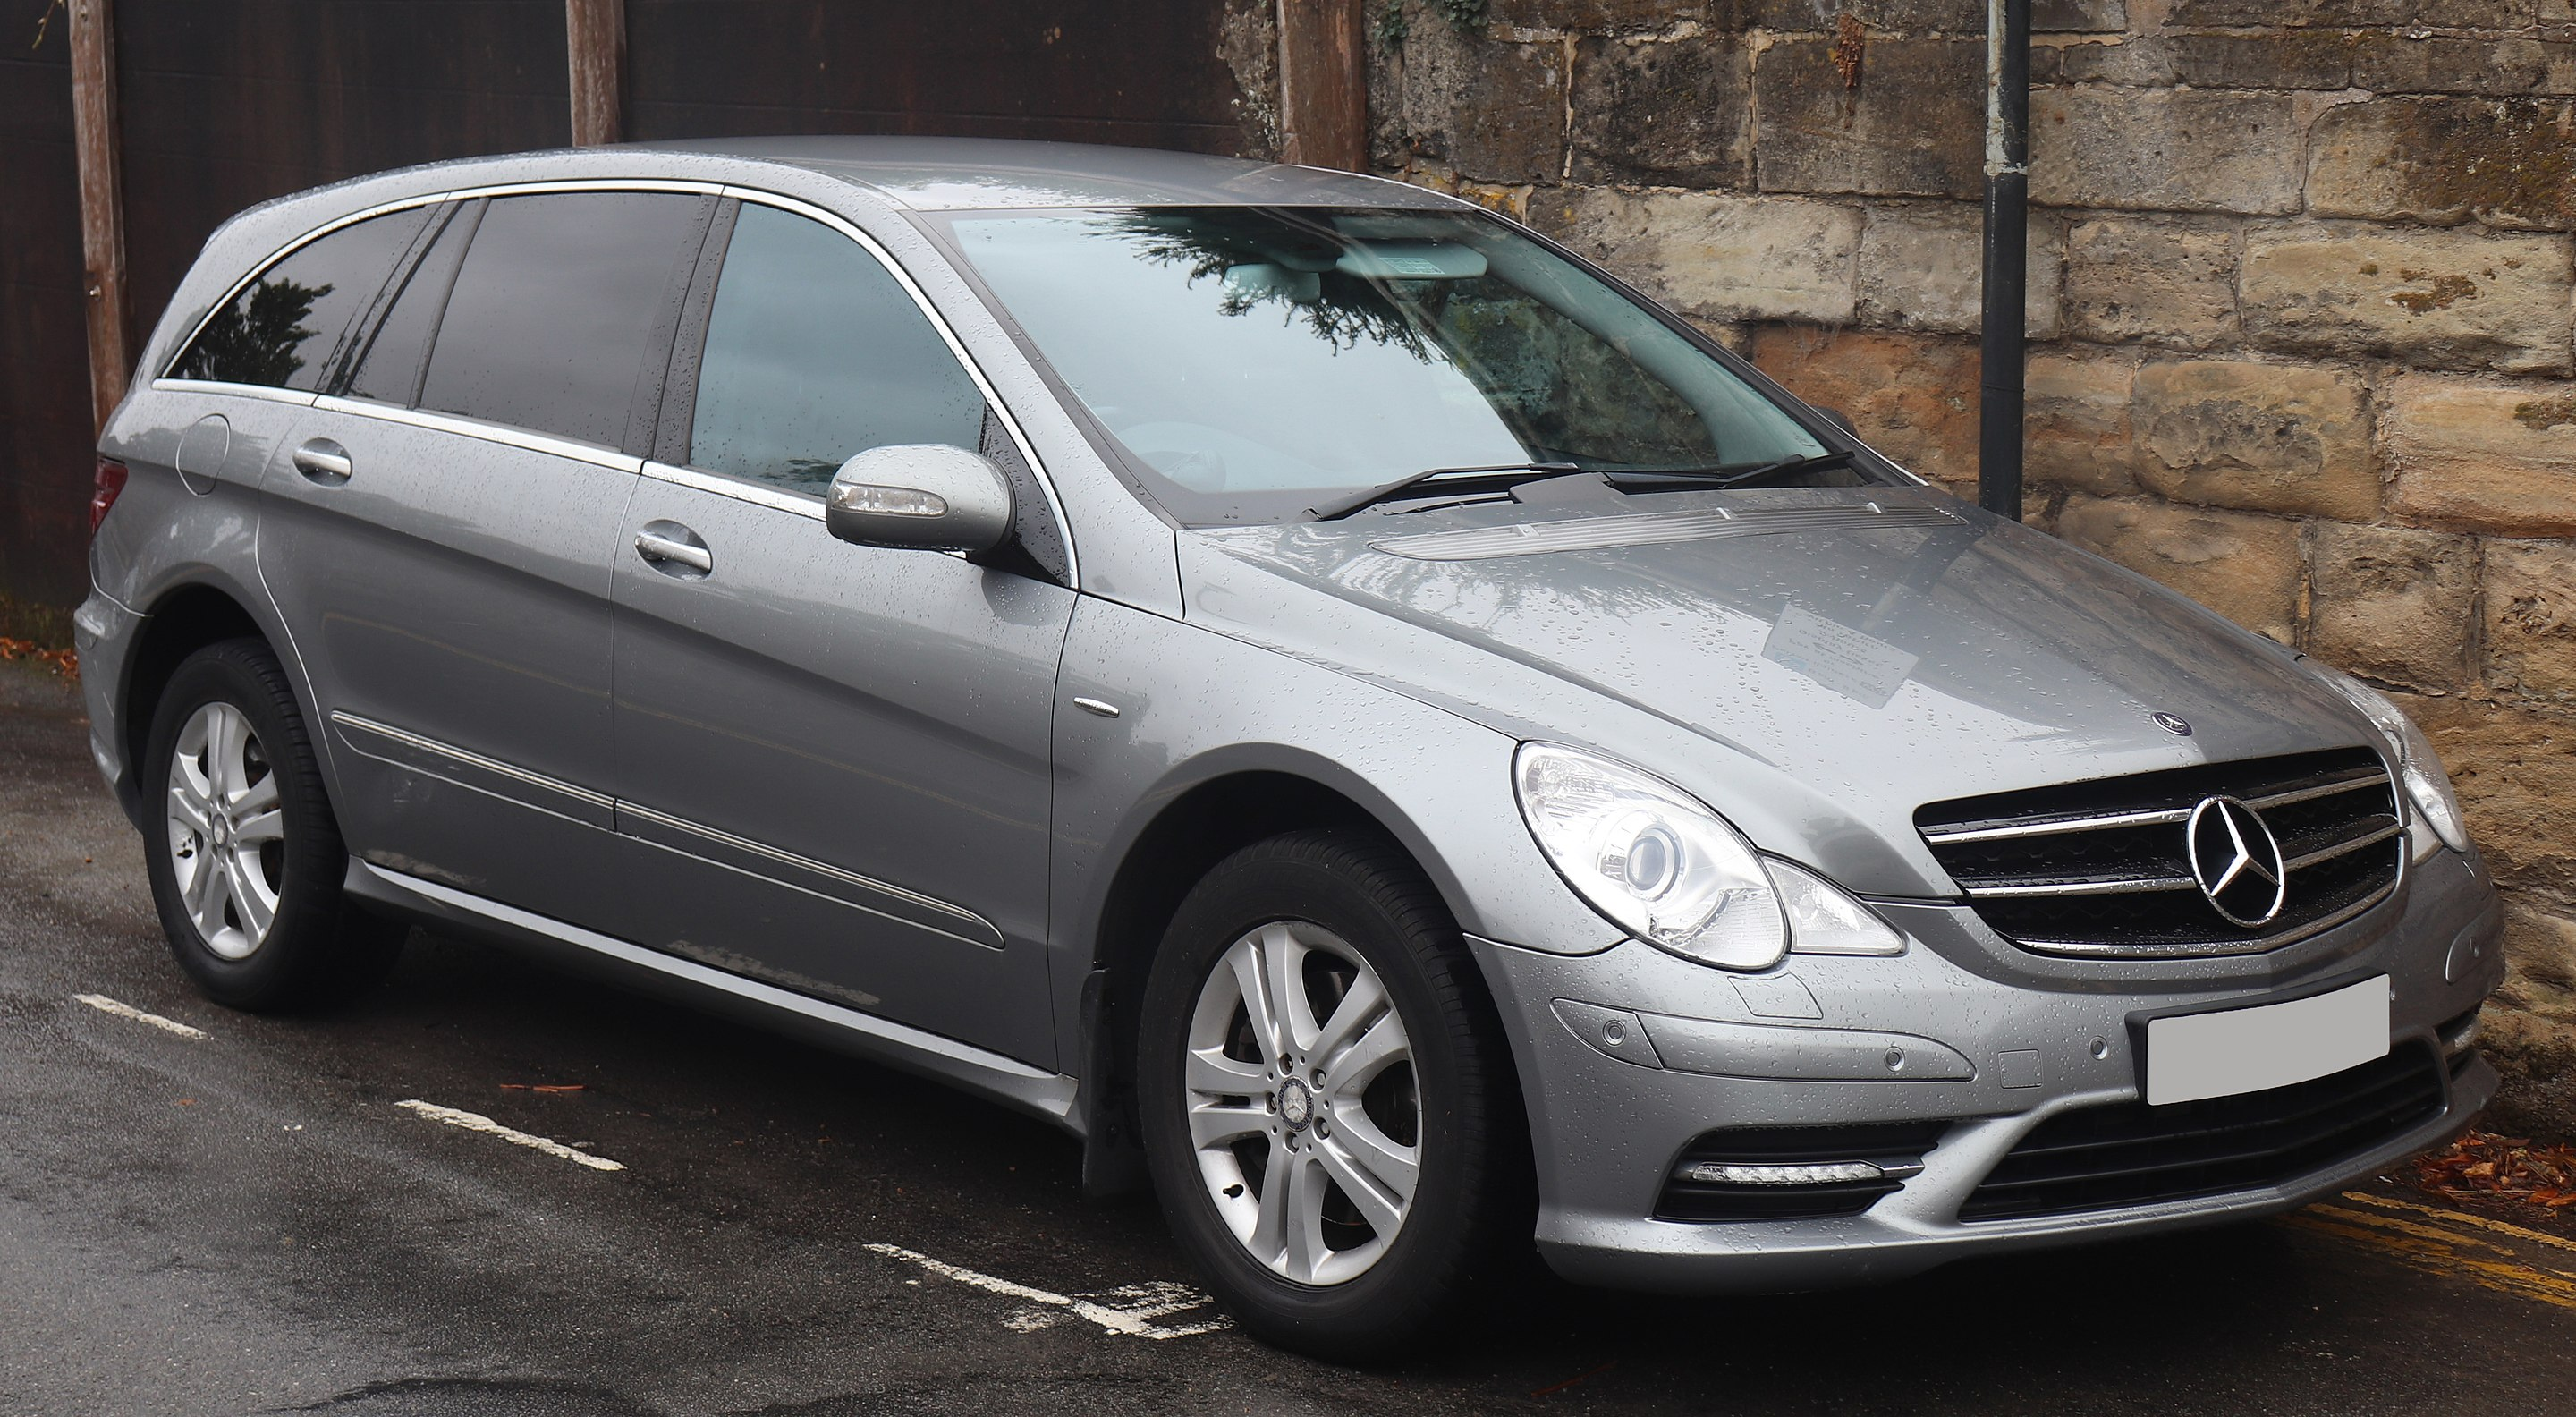 Auto Glass Repair and Replacement for Mercedes R Class